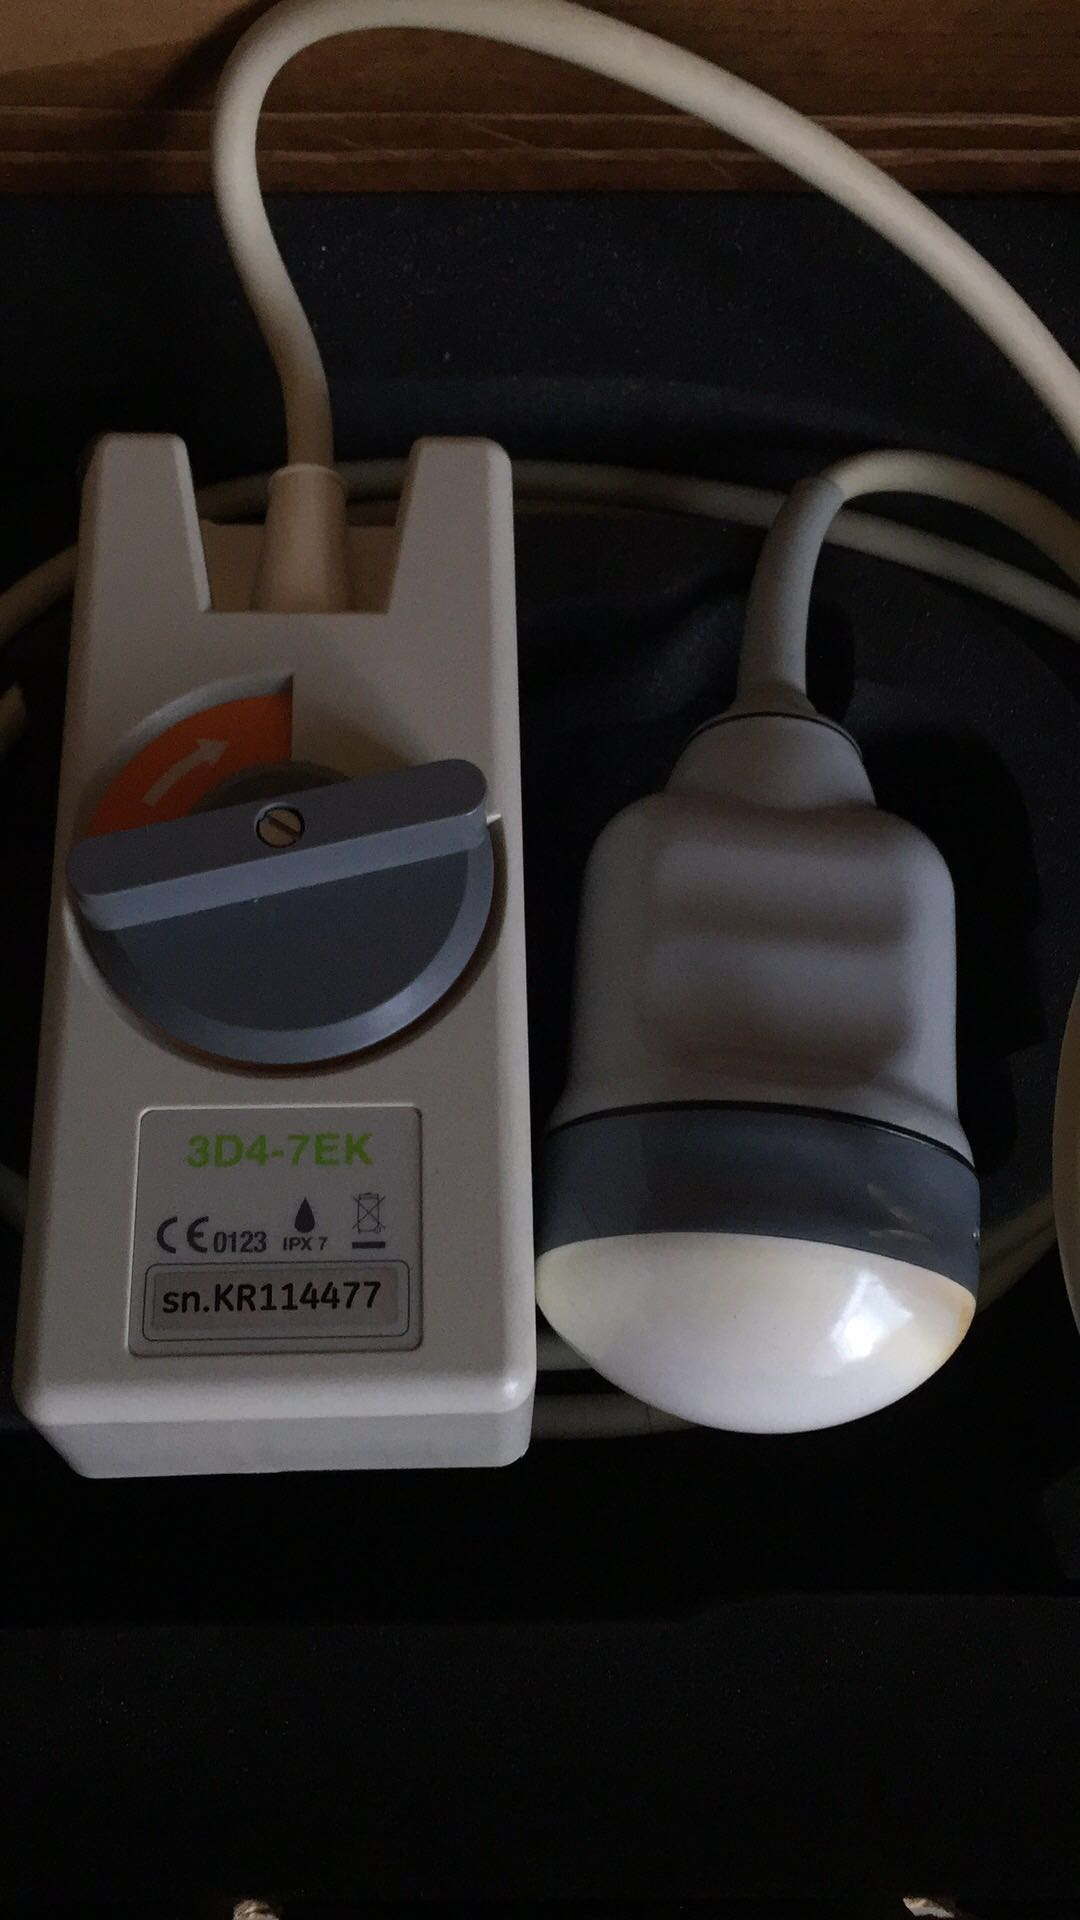 Repair Medison 3D4-7EK ultrasound probe